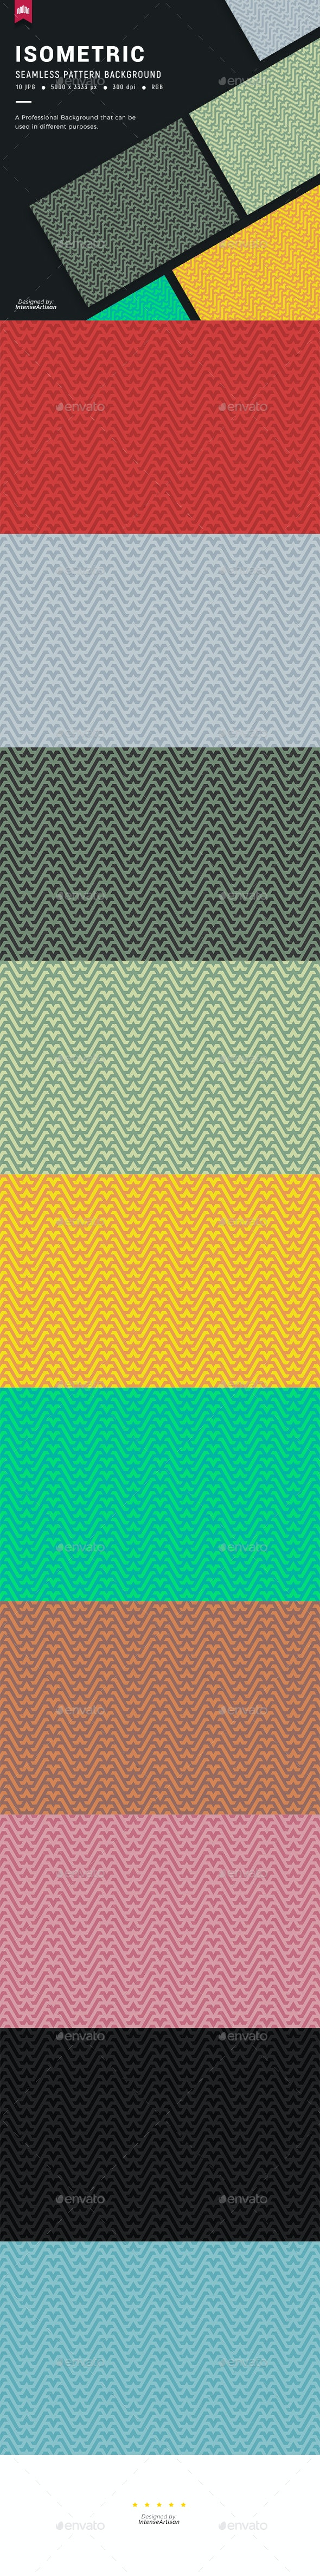 Isometric Seamless Pattern Background - Patterns Backgrounds